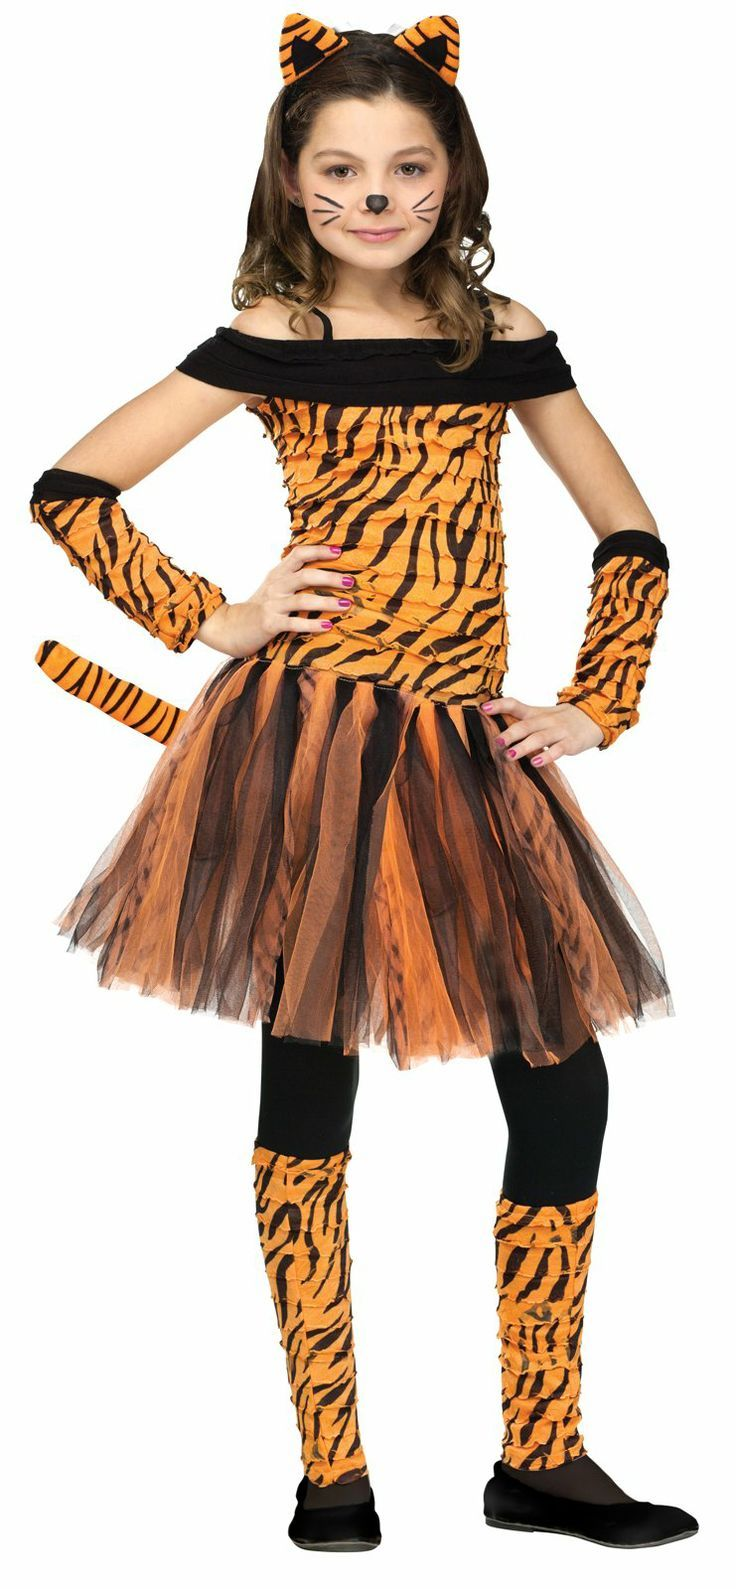 Pinterest for tiger costumes 13 year old girl halloween for 9 year old boy halloween costume ideas